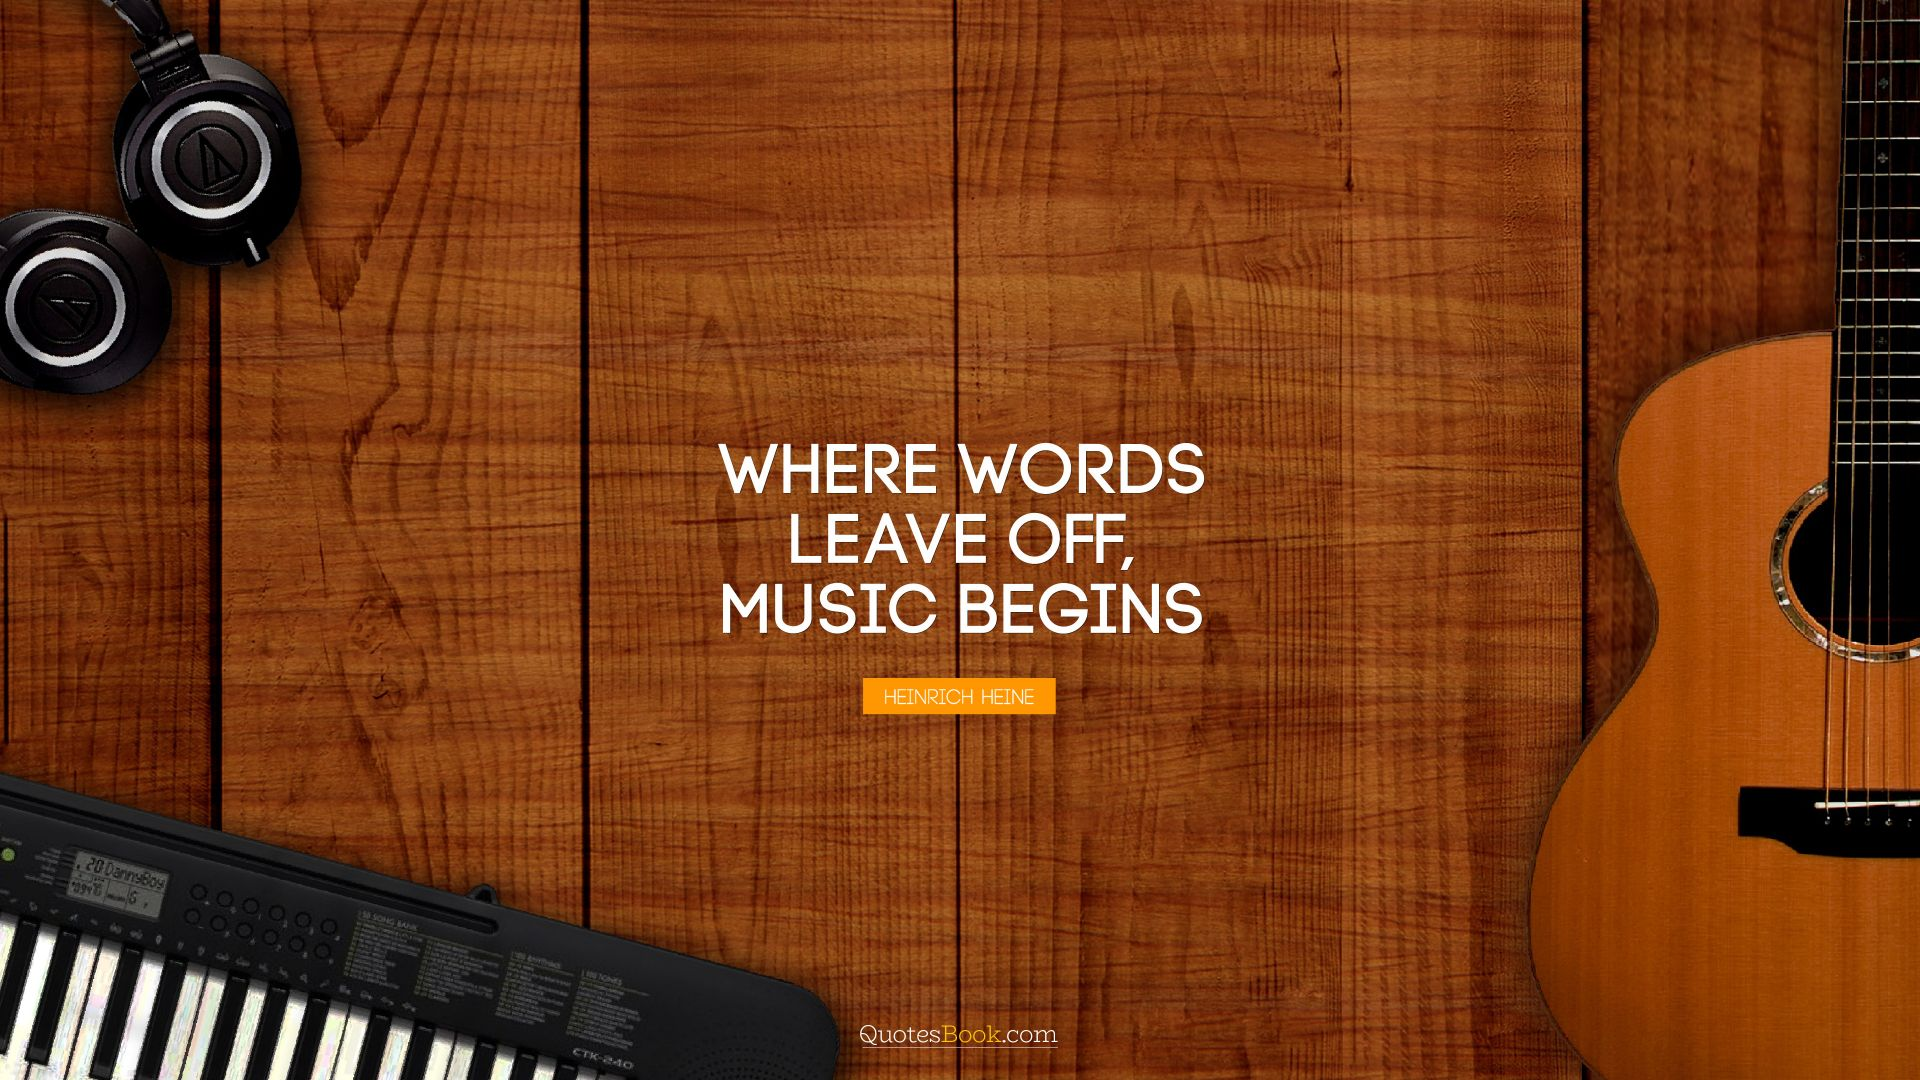 Where words leave off, music begins. - Quote by Heinrich Heine